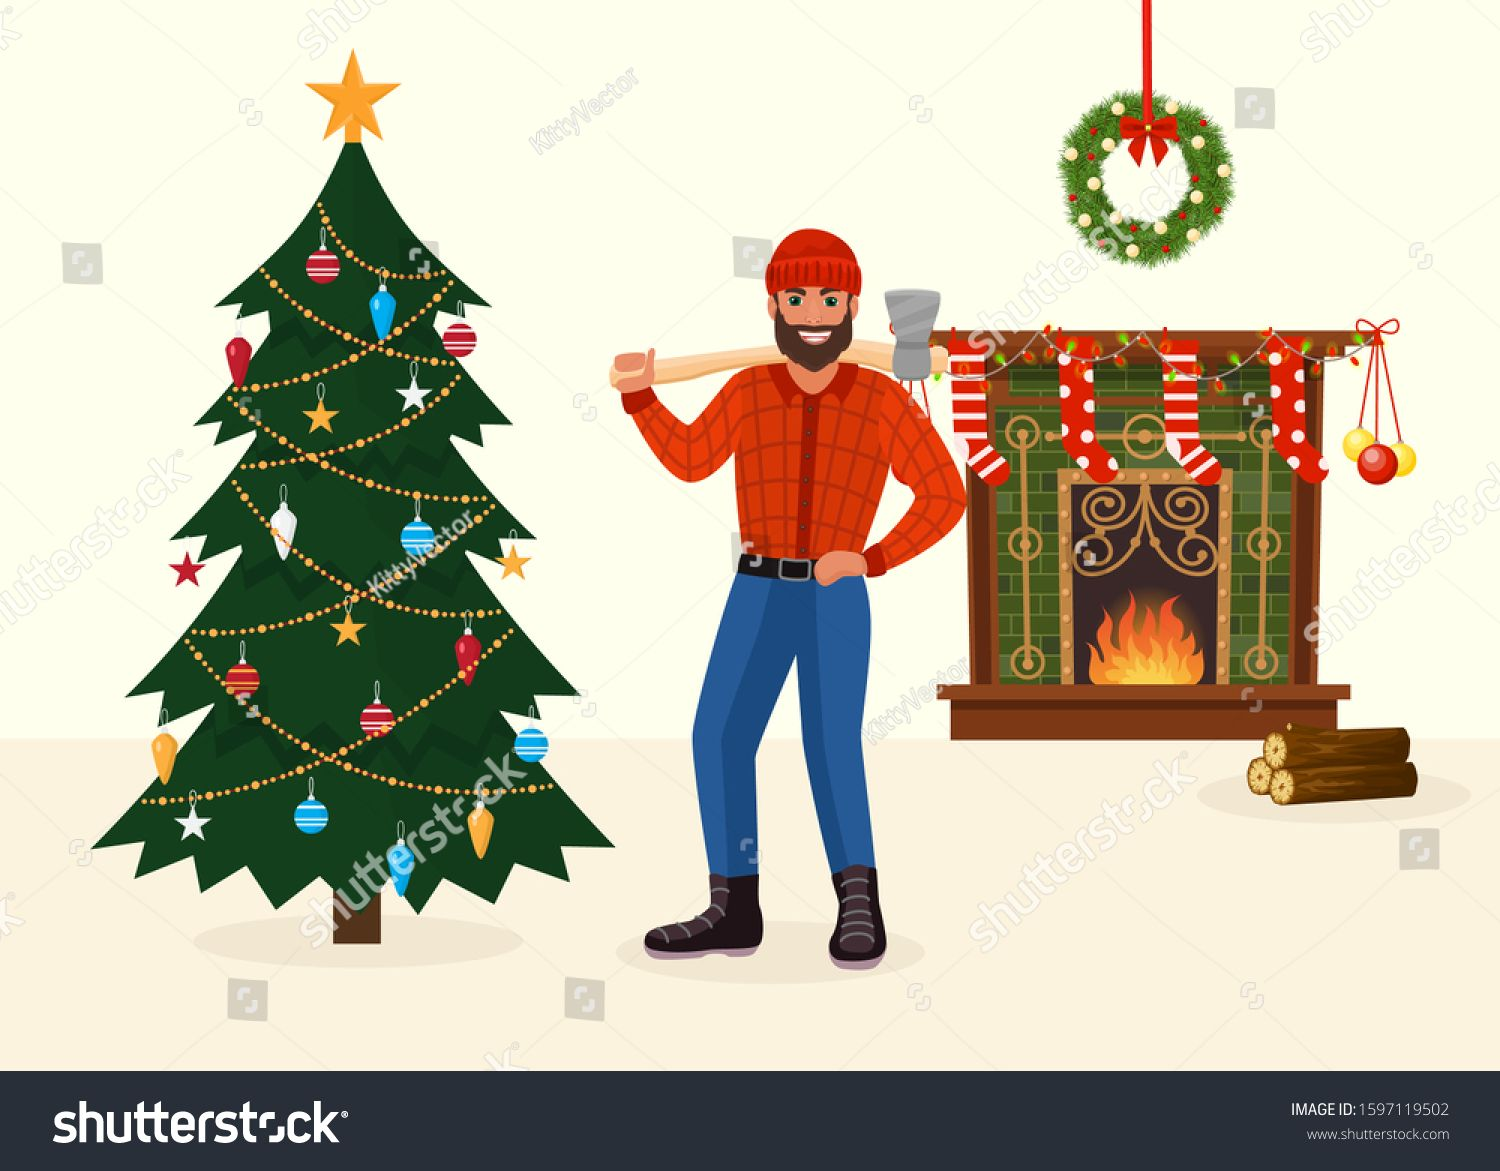 Felled Christmas Tree And Man Holding Ax In New Year Decorated Room Vector Illustration Celebrating Holiday At Home With Xm In 2020 Christmas Tree Xmas Tree Christmas